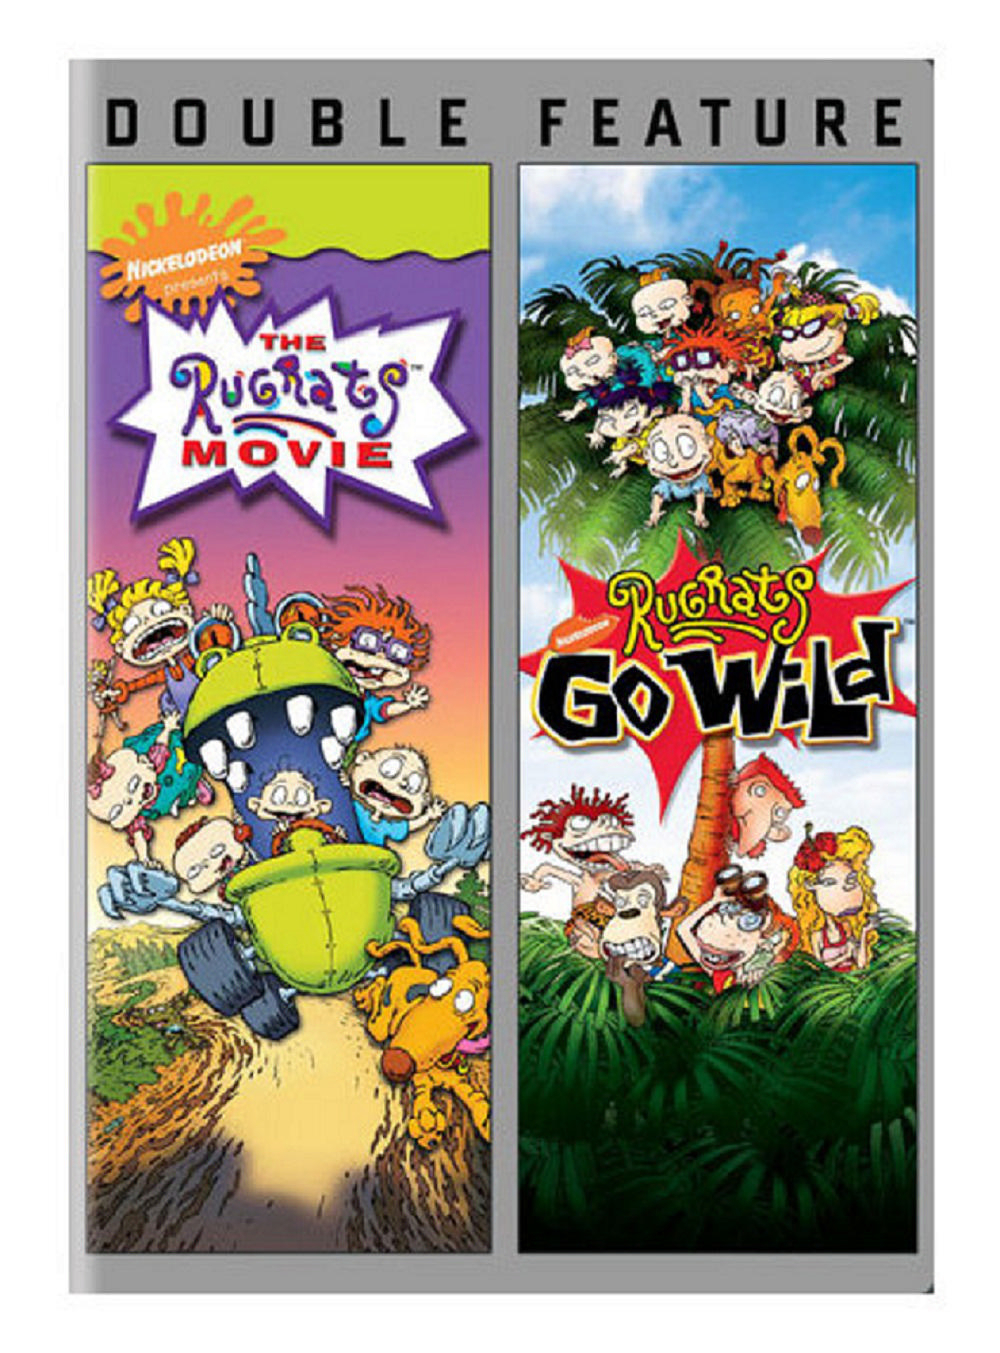 Nickelodeon: The Rugrats Movie and Rugrats Go Wild DVD